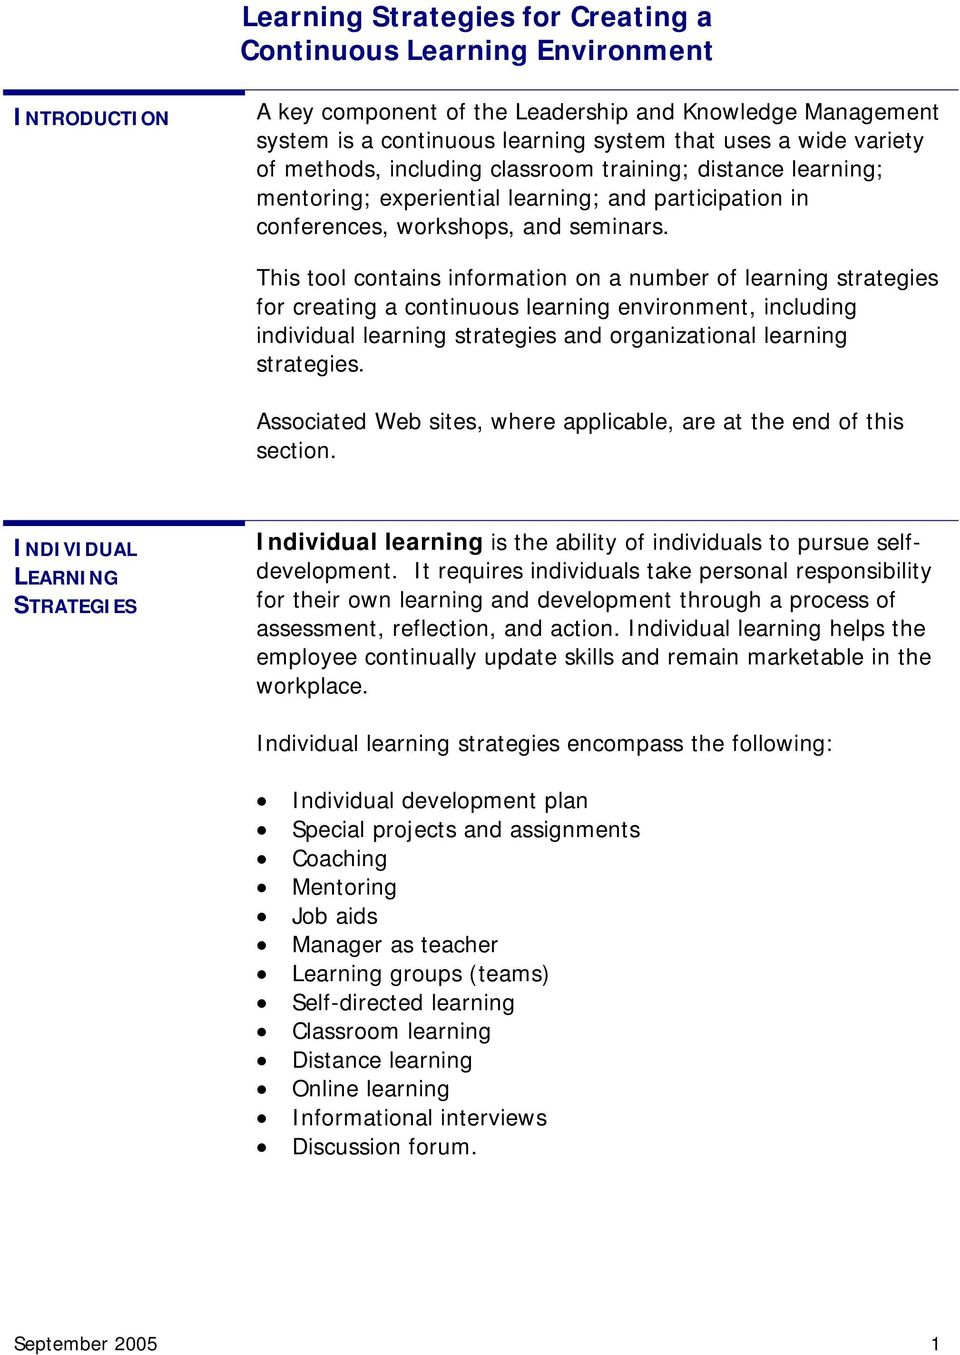 This tool contains information on a number of learning strategies for creating a continuous learning environment, including individual learning strategies and organizational learning strategies.